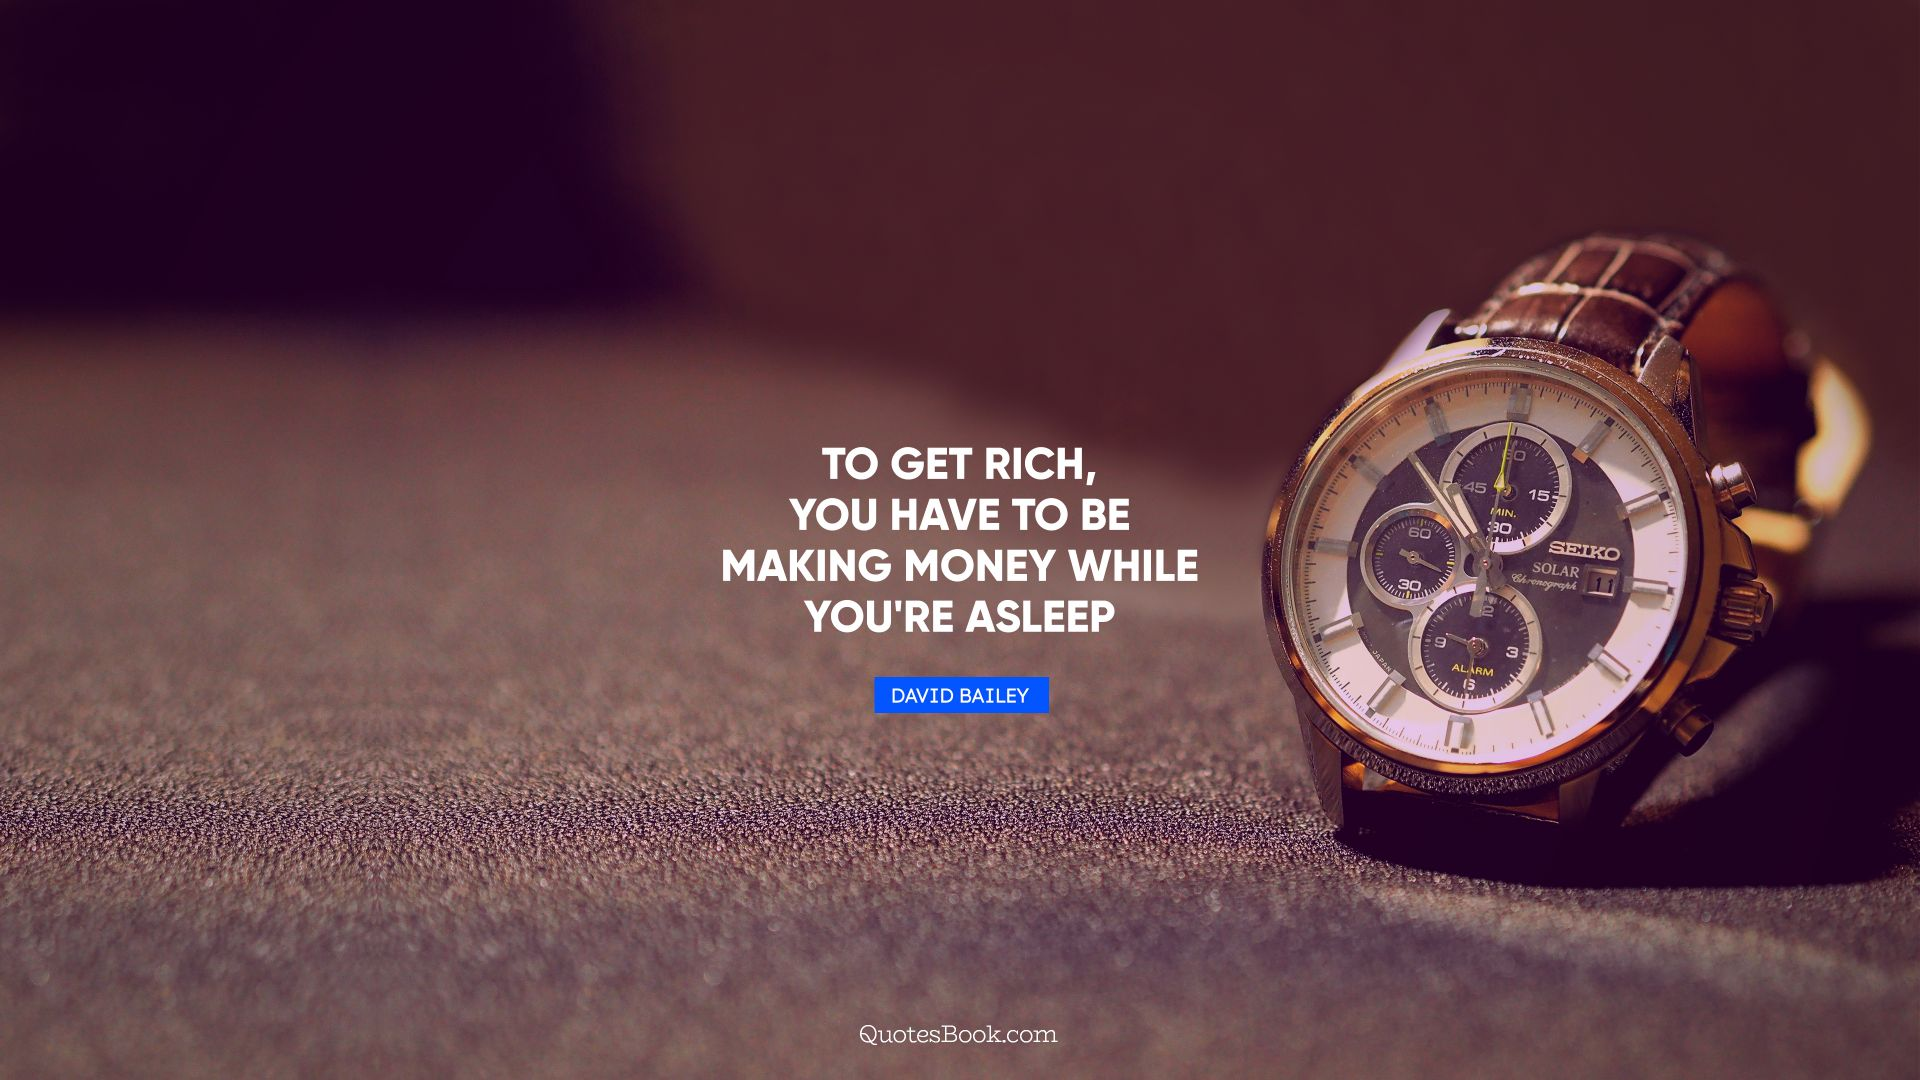 To get rich, you have to be making money while you're asleep. - Quote by David Bailey